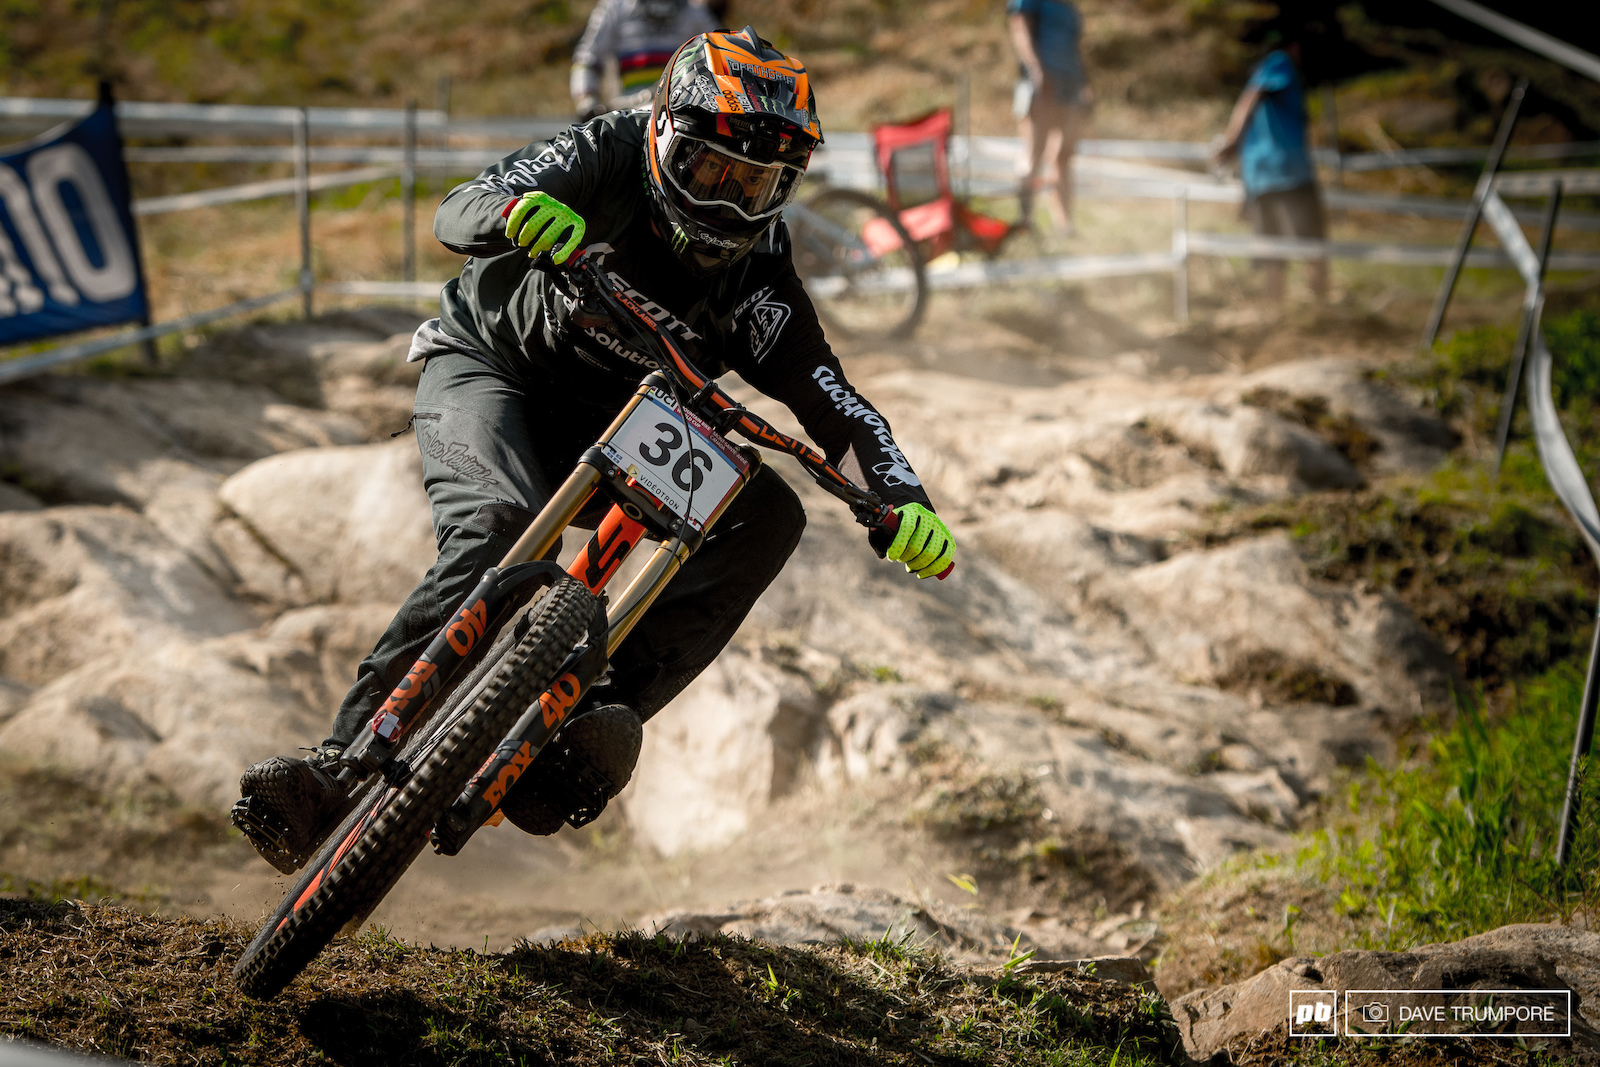 Brendan Fairclough smashed all the rocks in MSA to grab a top 10 time in training.